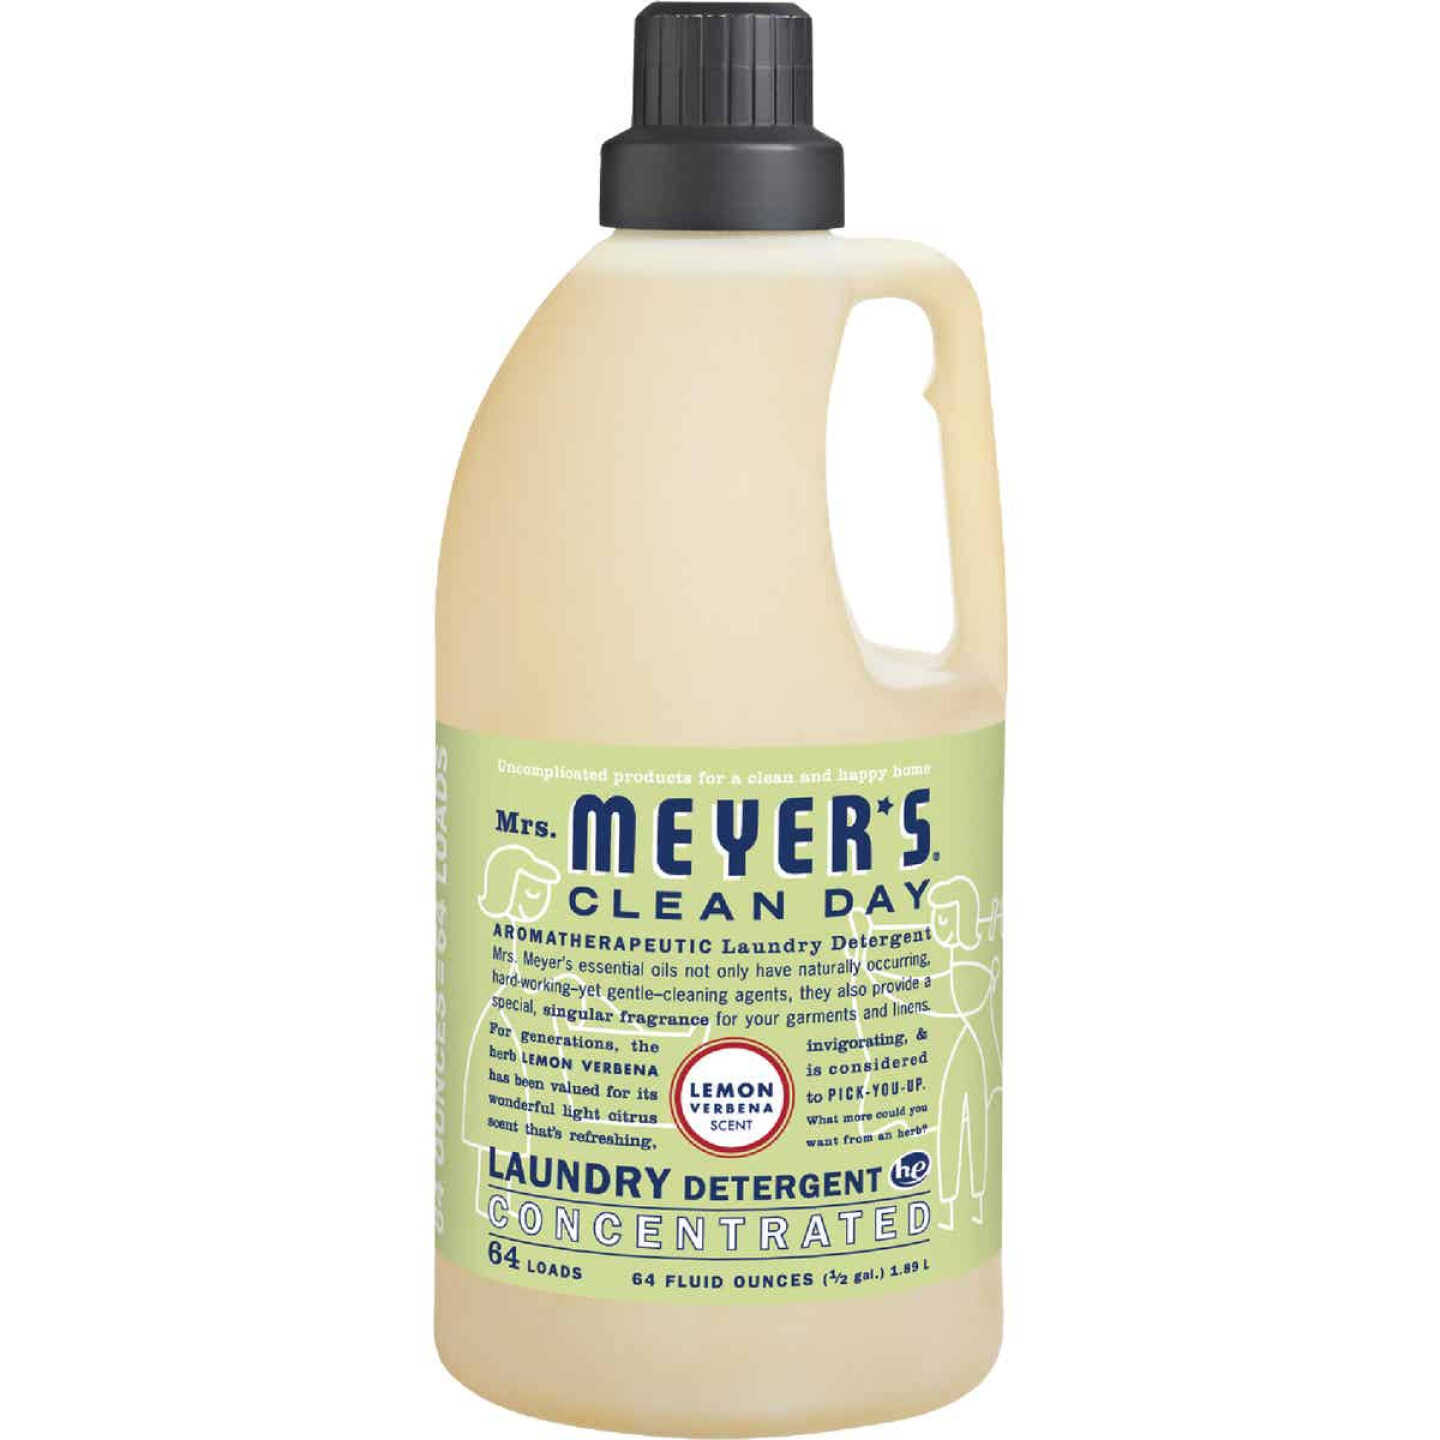 Mrs. Meyer's Clean Day 64 Oz. Lemon Concentrated Laundry Detergent Image 1